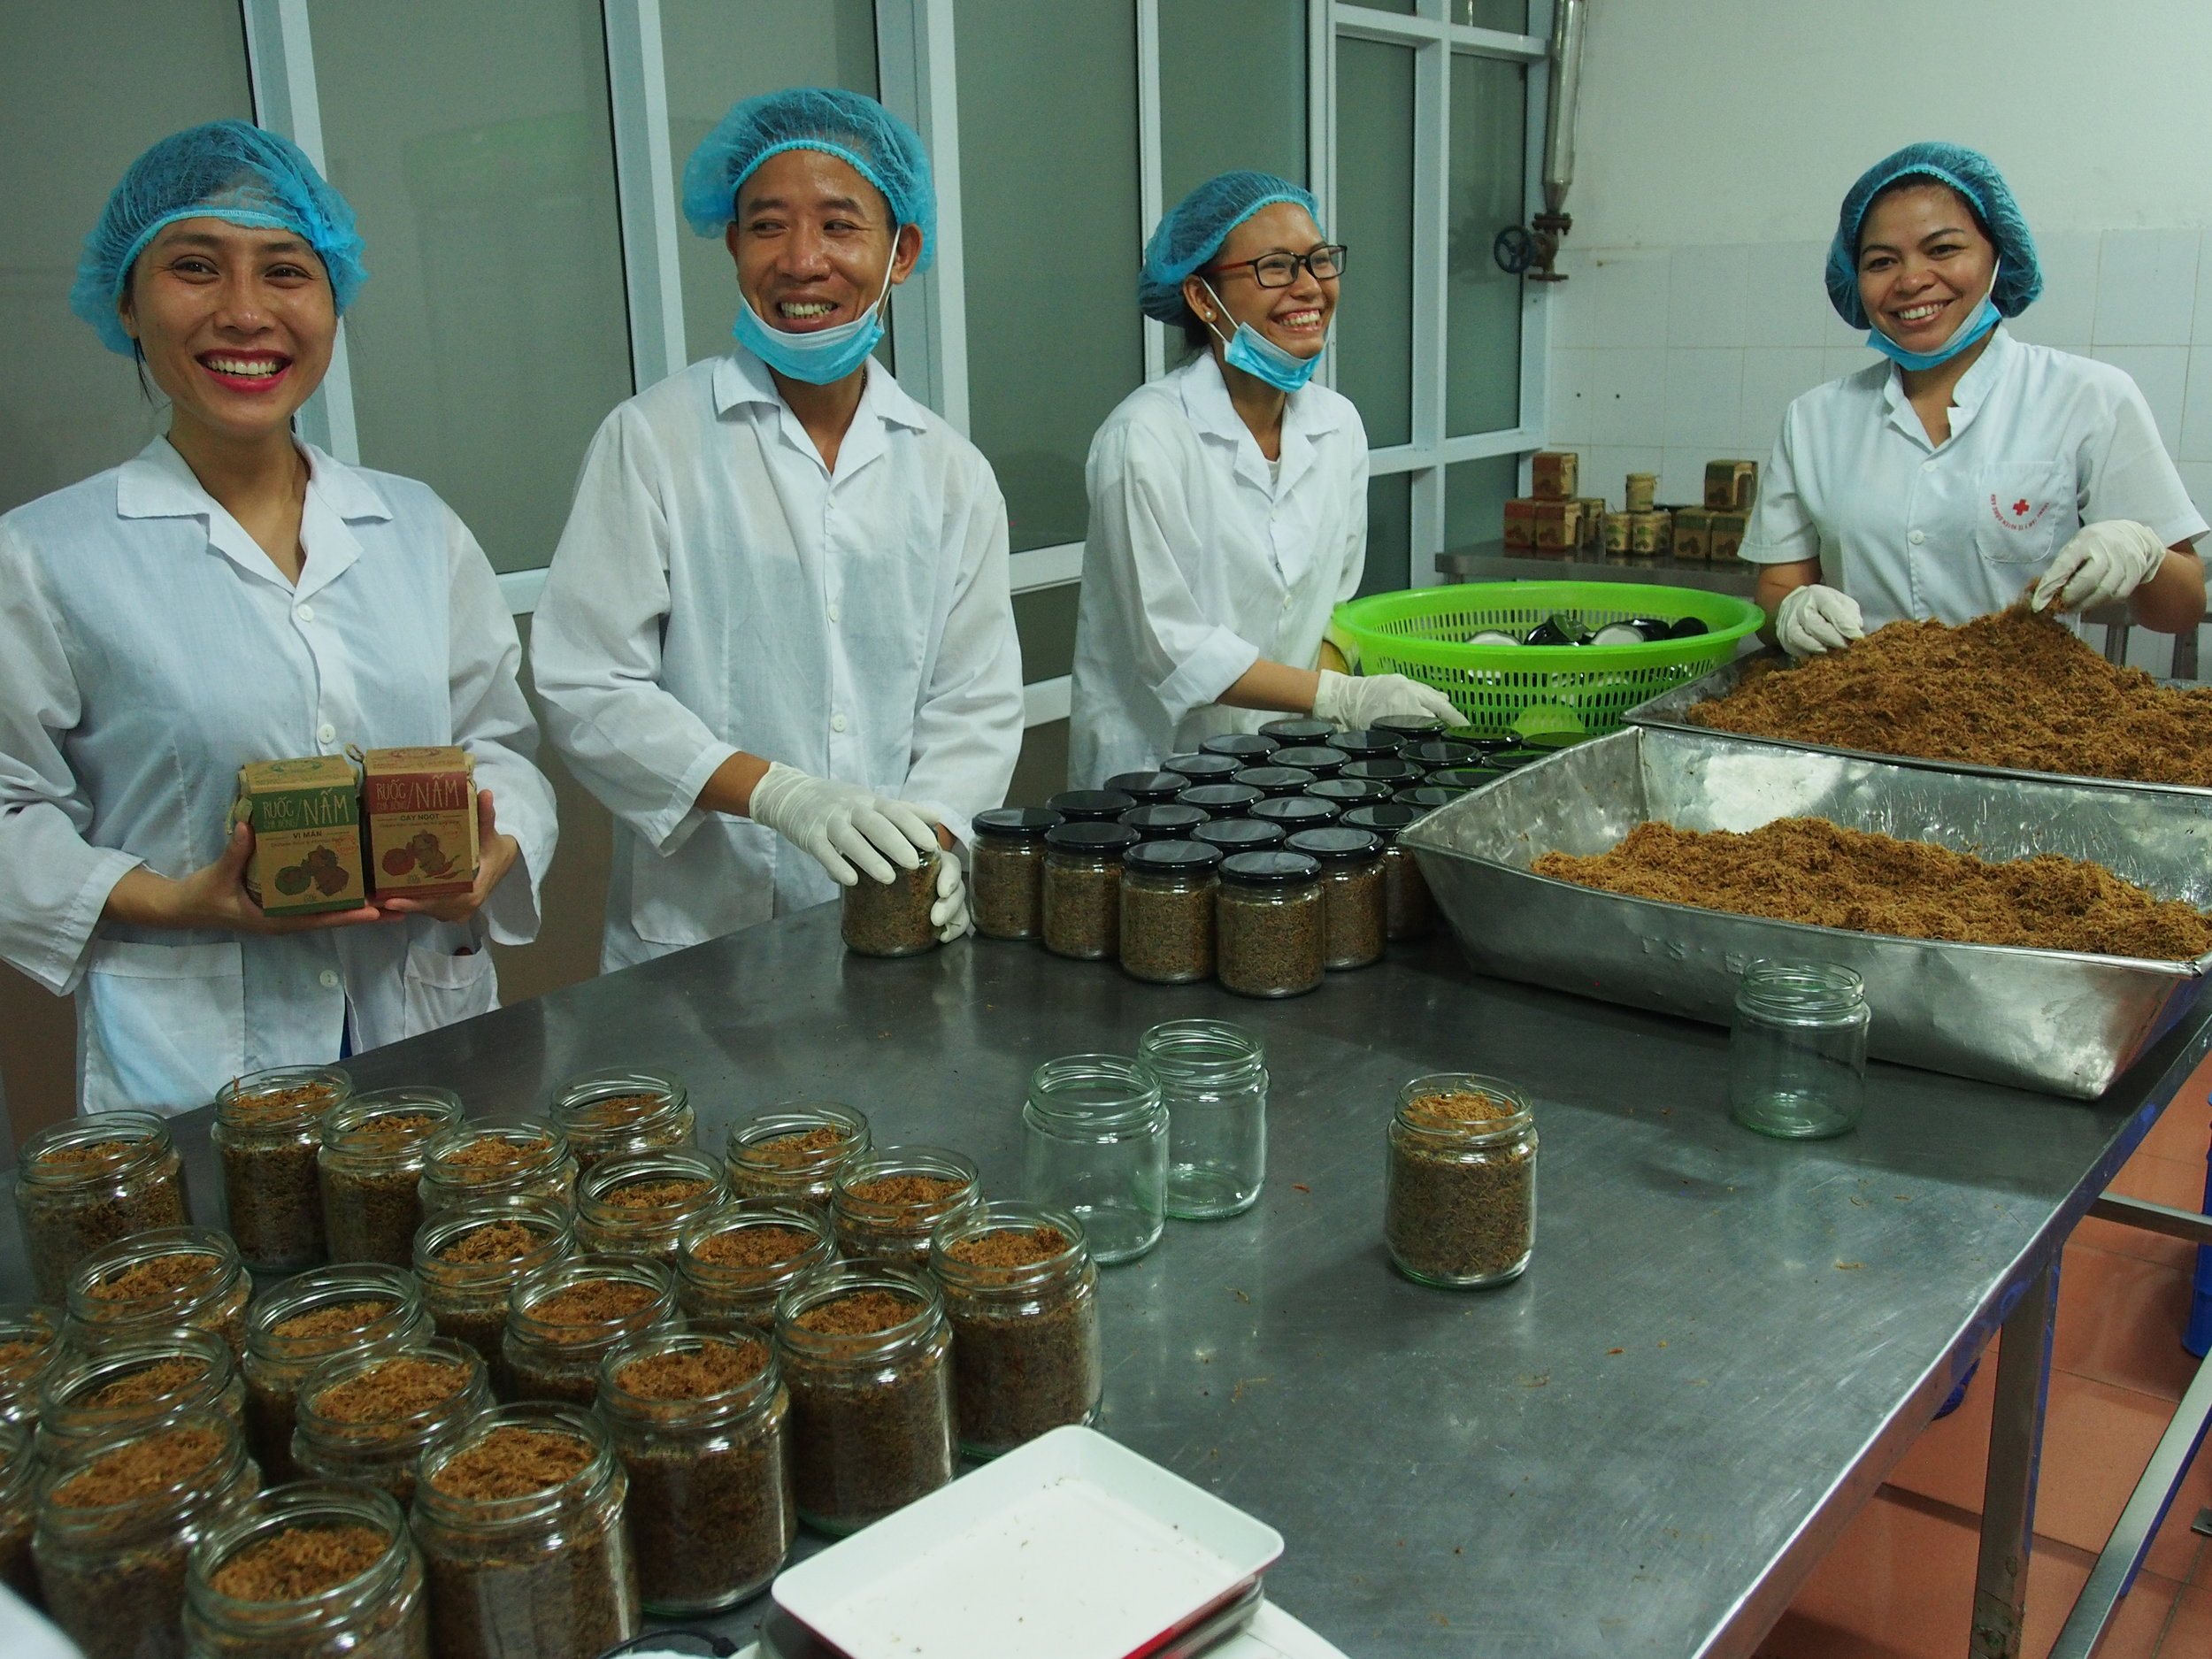 Owner Pham Hong Van with employees in Smiling Mushroom's production facility